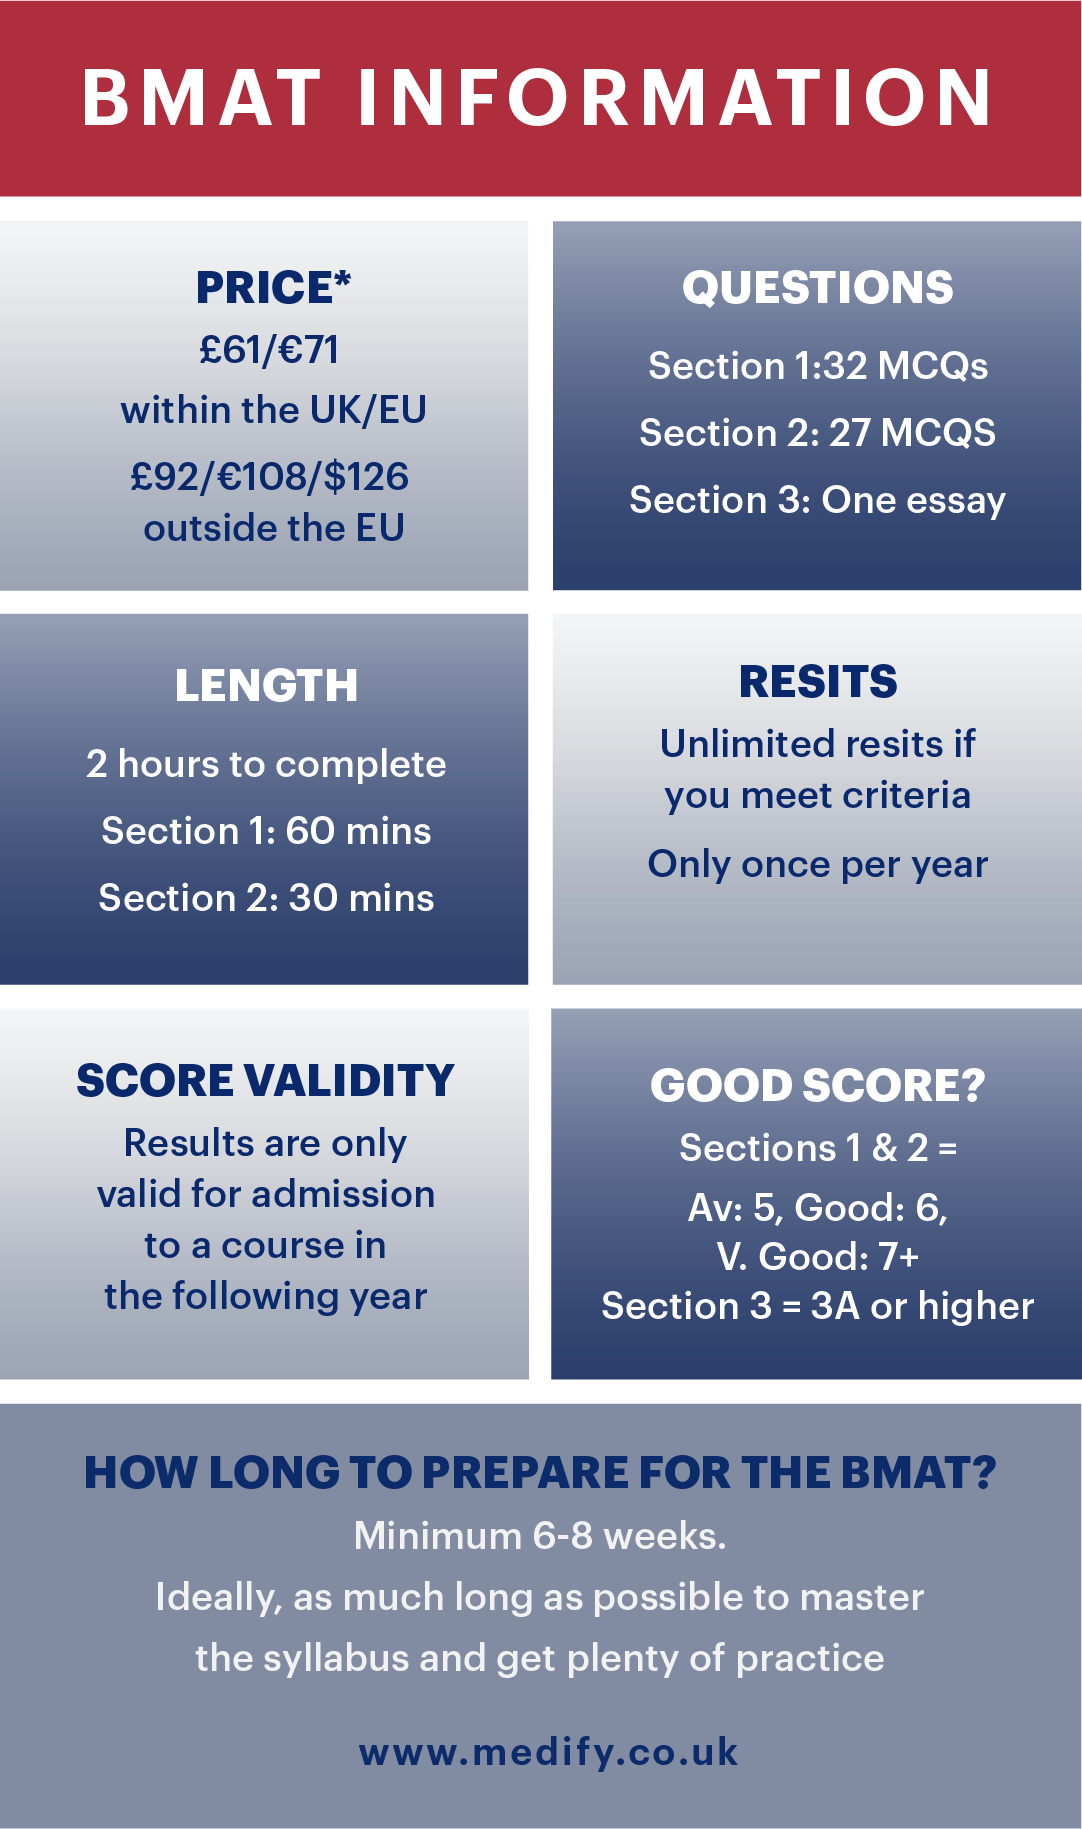 BMAT Information infographic, including price, questions, length, resits, score validity, what is a good BMAT score?, and how long to prepare for